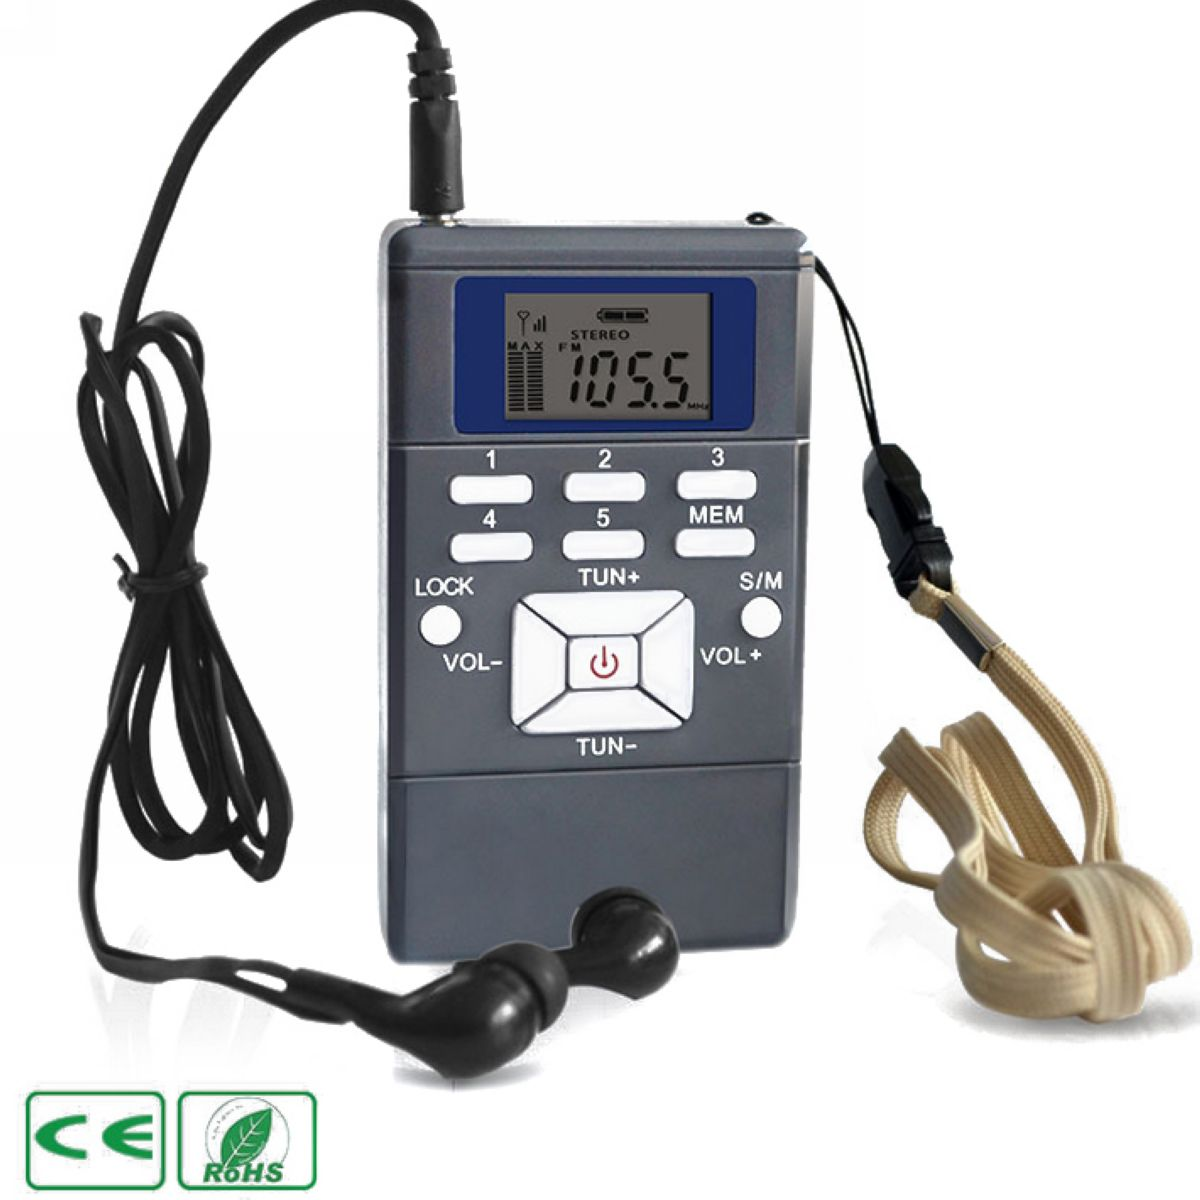 Onsale 1pc Portable Handheld Digital FM Radio 2 Channel Single Band FM Radio Receiver Battery Powered with Earphone